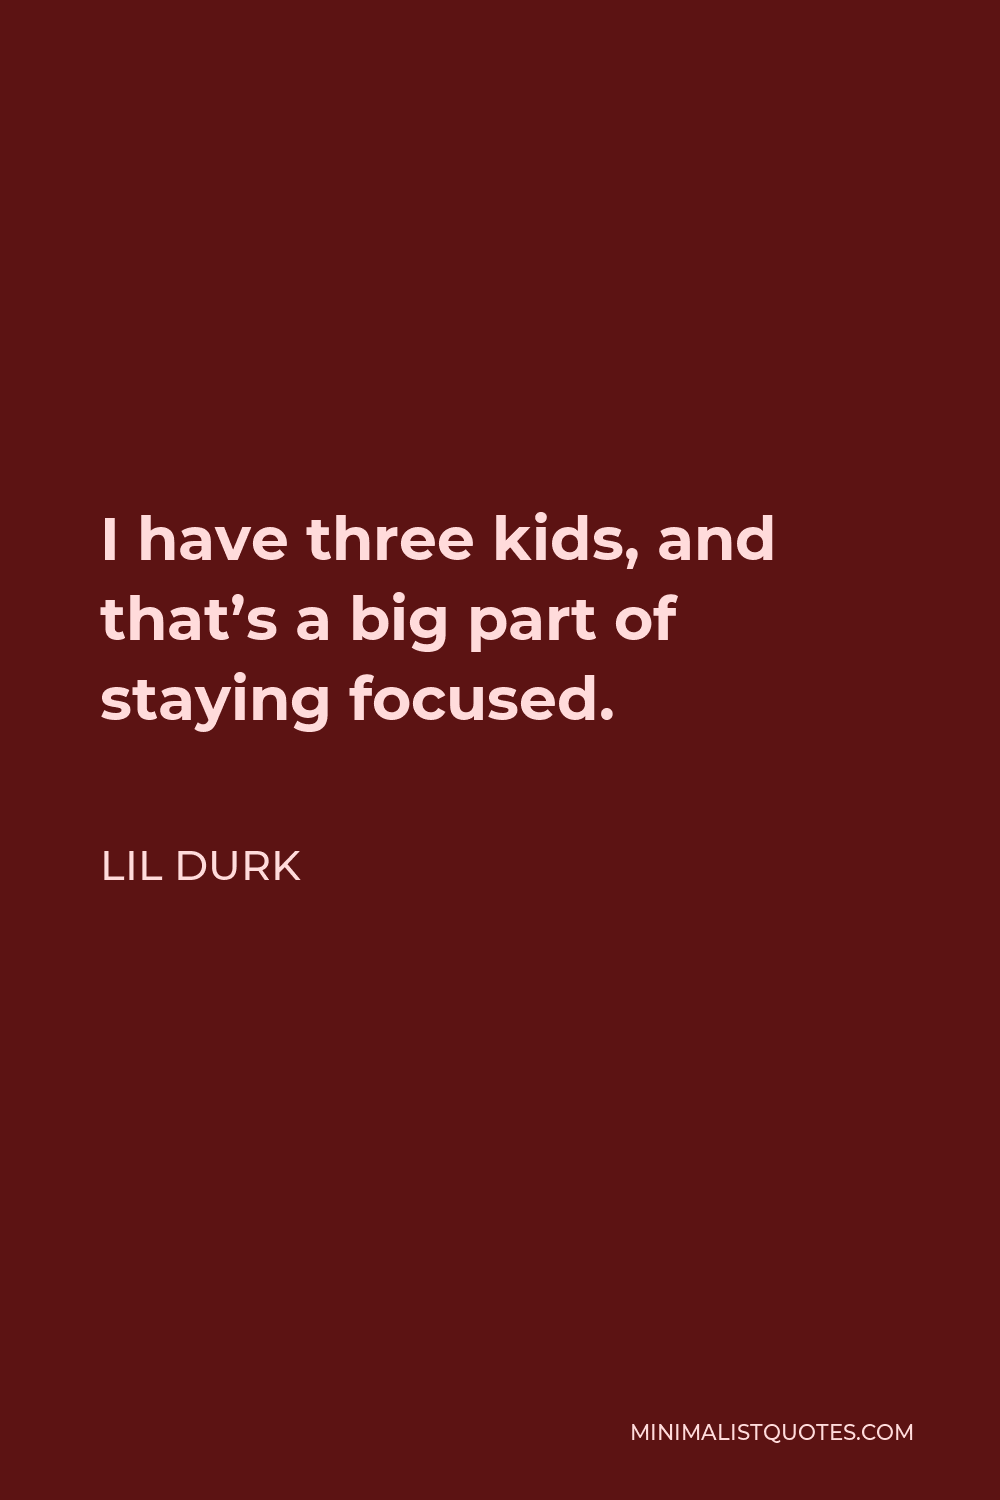 Lil Durk Quote - I have three kids, and that's a big part of staying focused.